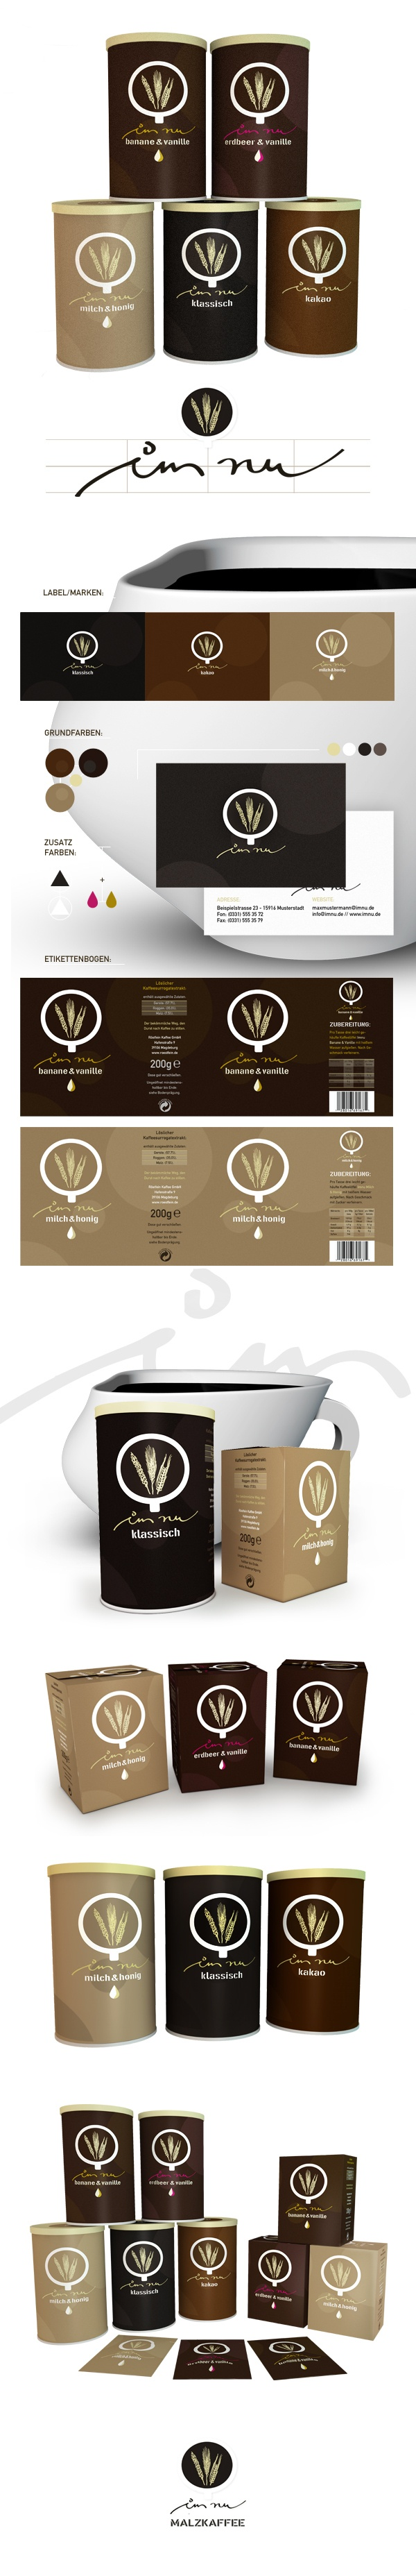 IMNU - Malzkaffee by David Göpfert, via Behance